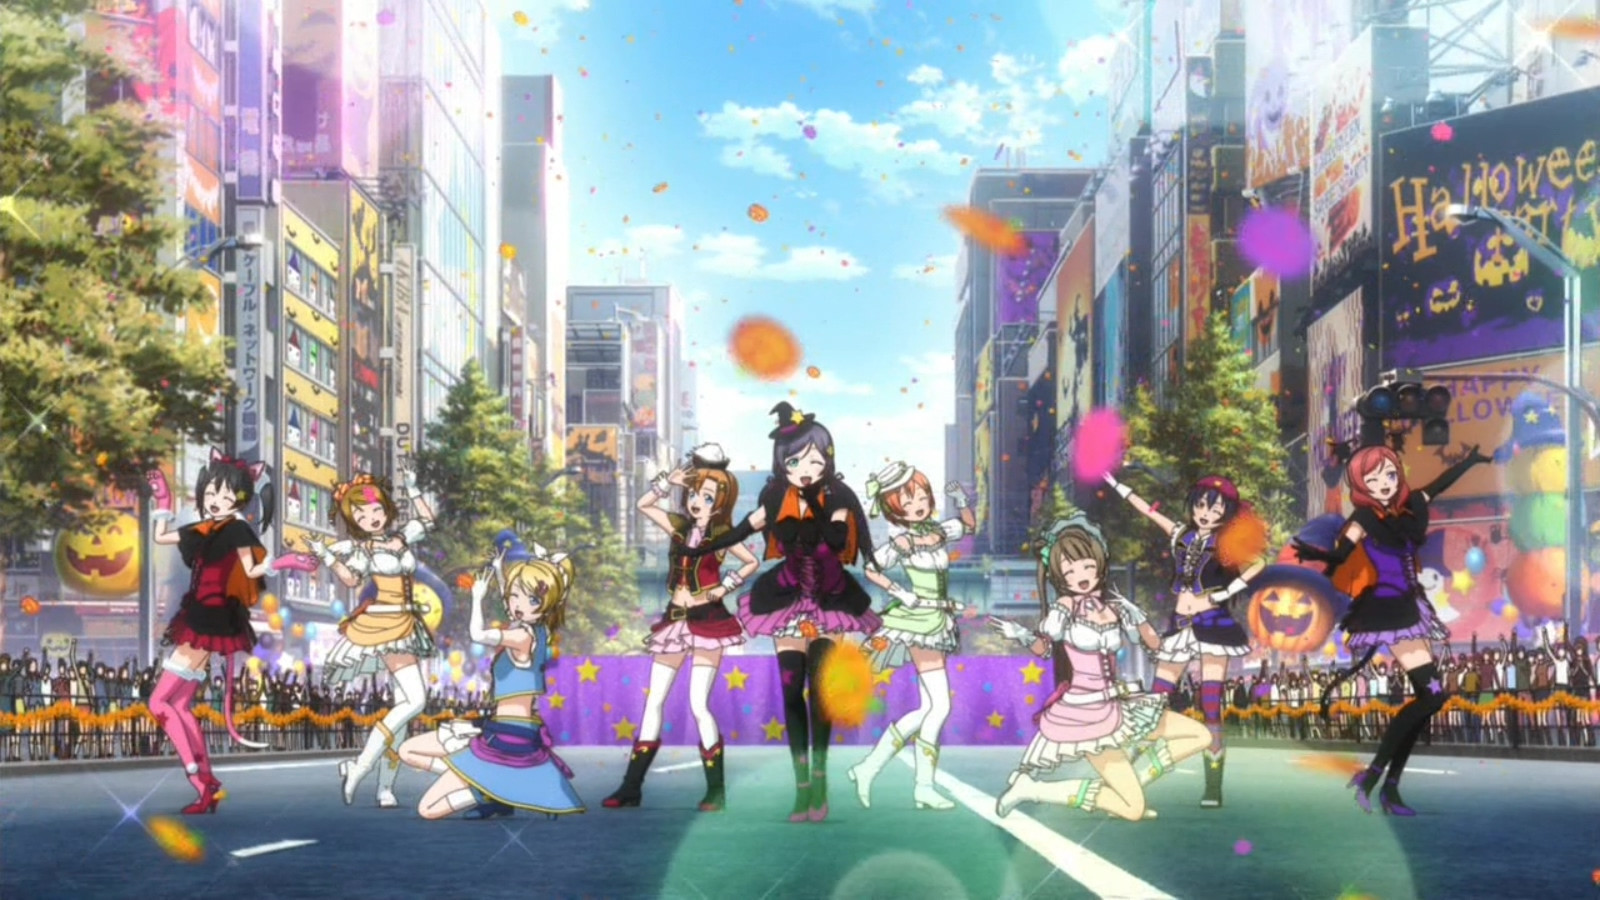 Love live school idol project episode 6 - Avengers assemble episode